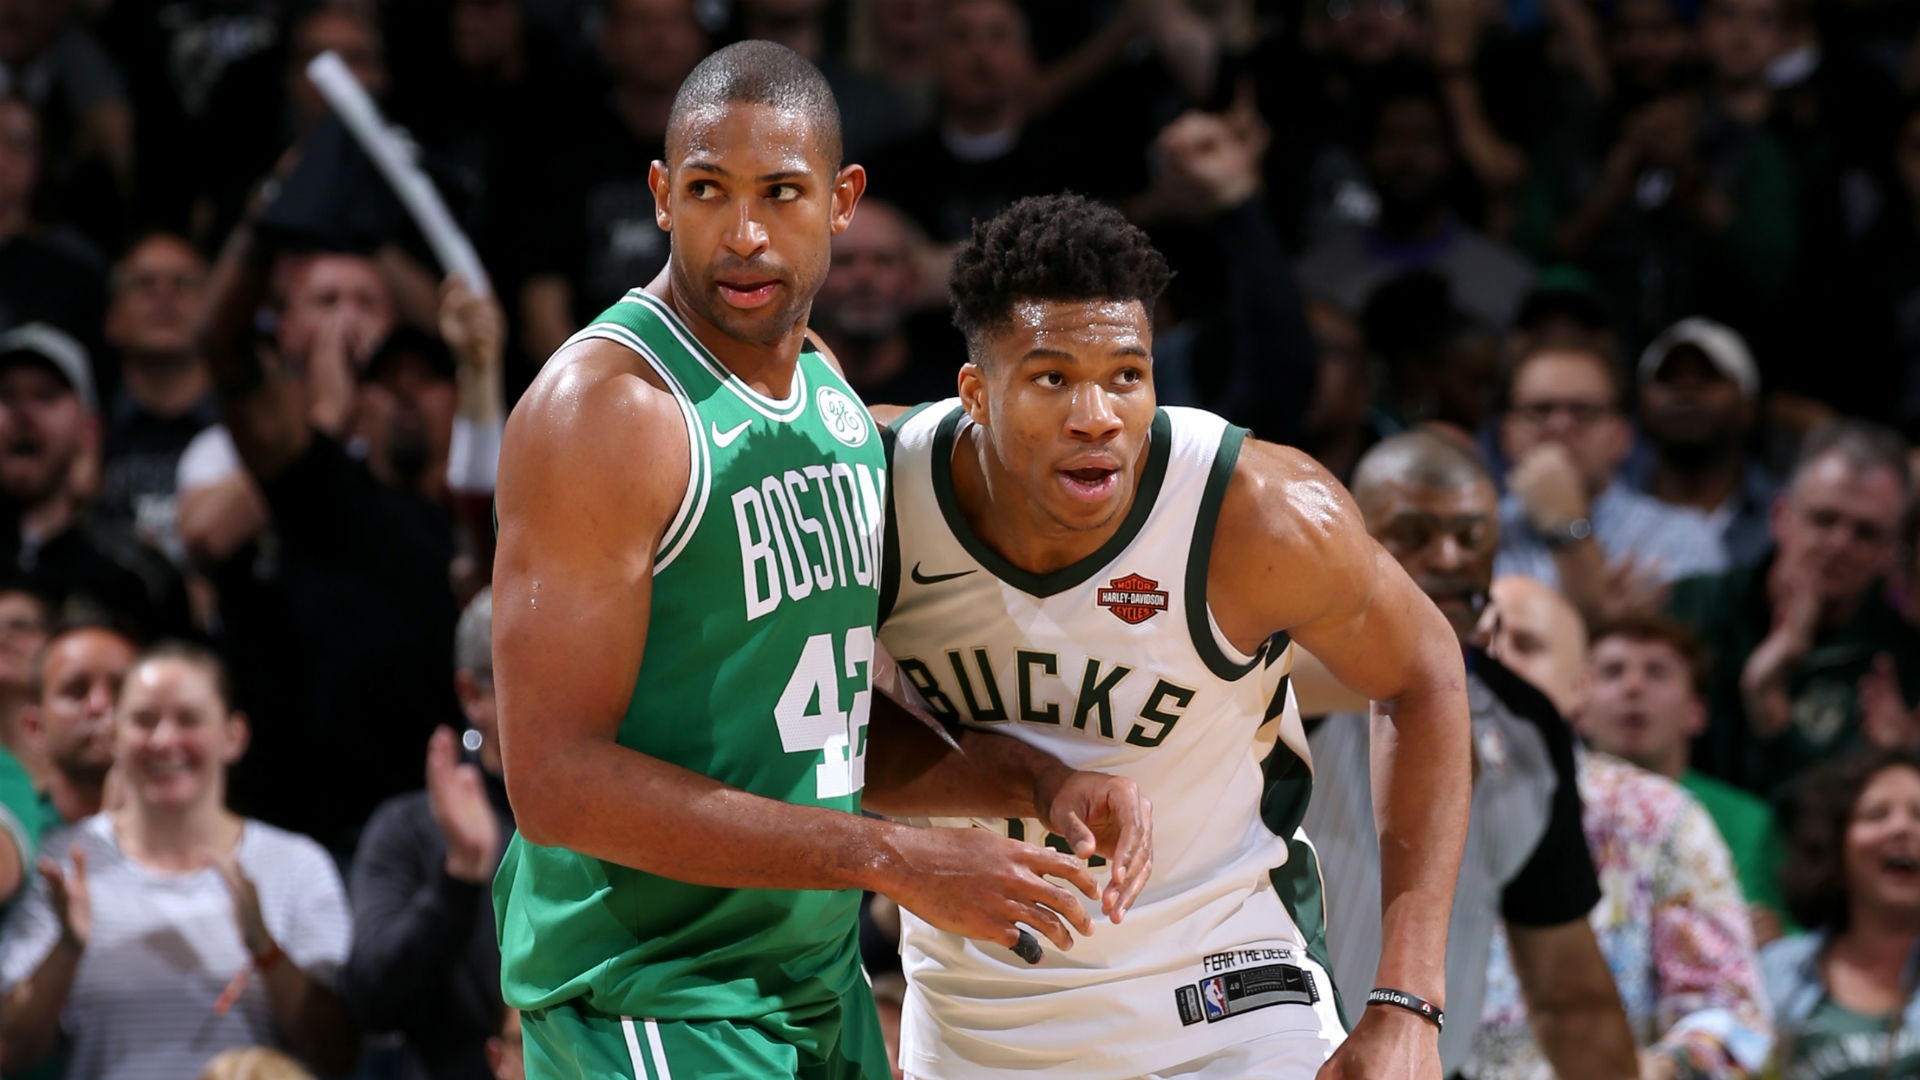 NBA Rumors Boston Celtics needs to Trade for Big Players against Bucks' Giannis Antetokounmpo